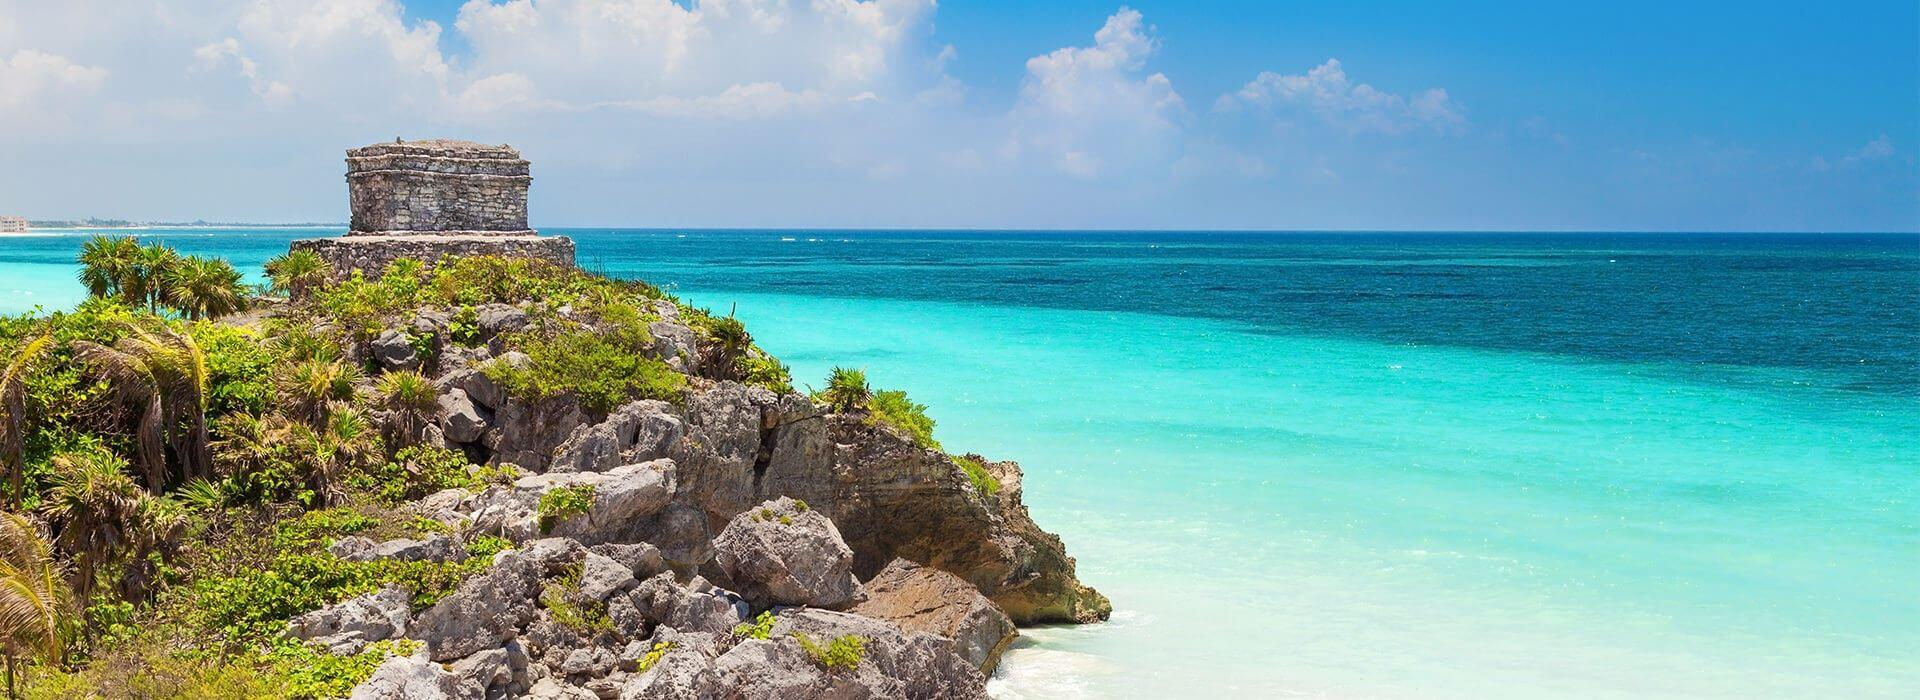 Hotels Near Tulum Mexico